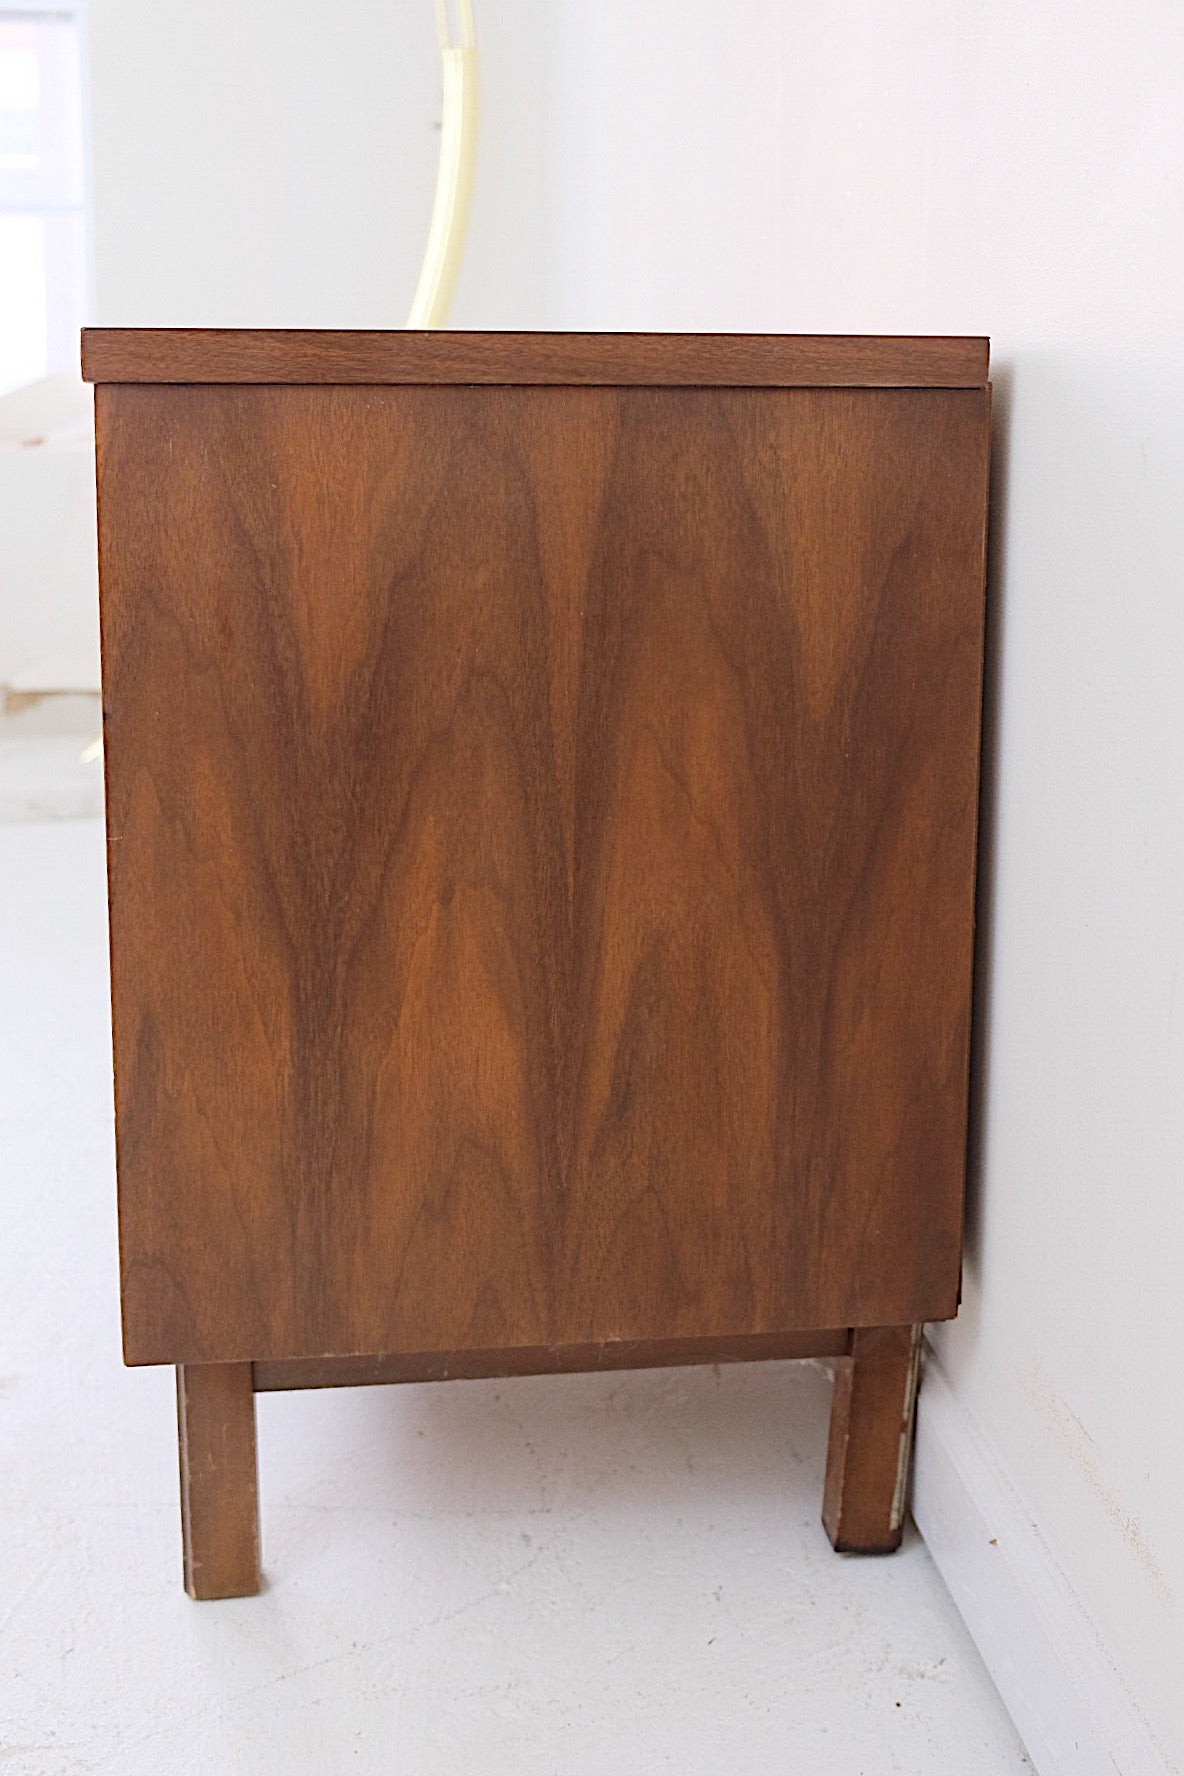 Rattan Cane Brass Nightstand Style Of Jack Cartwright for Founders